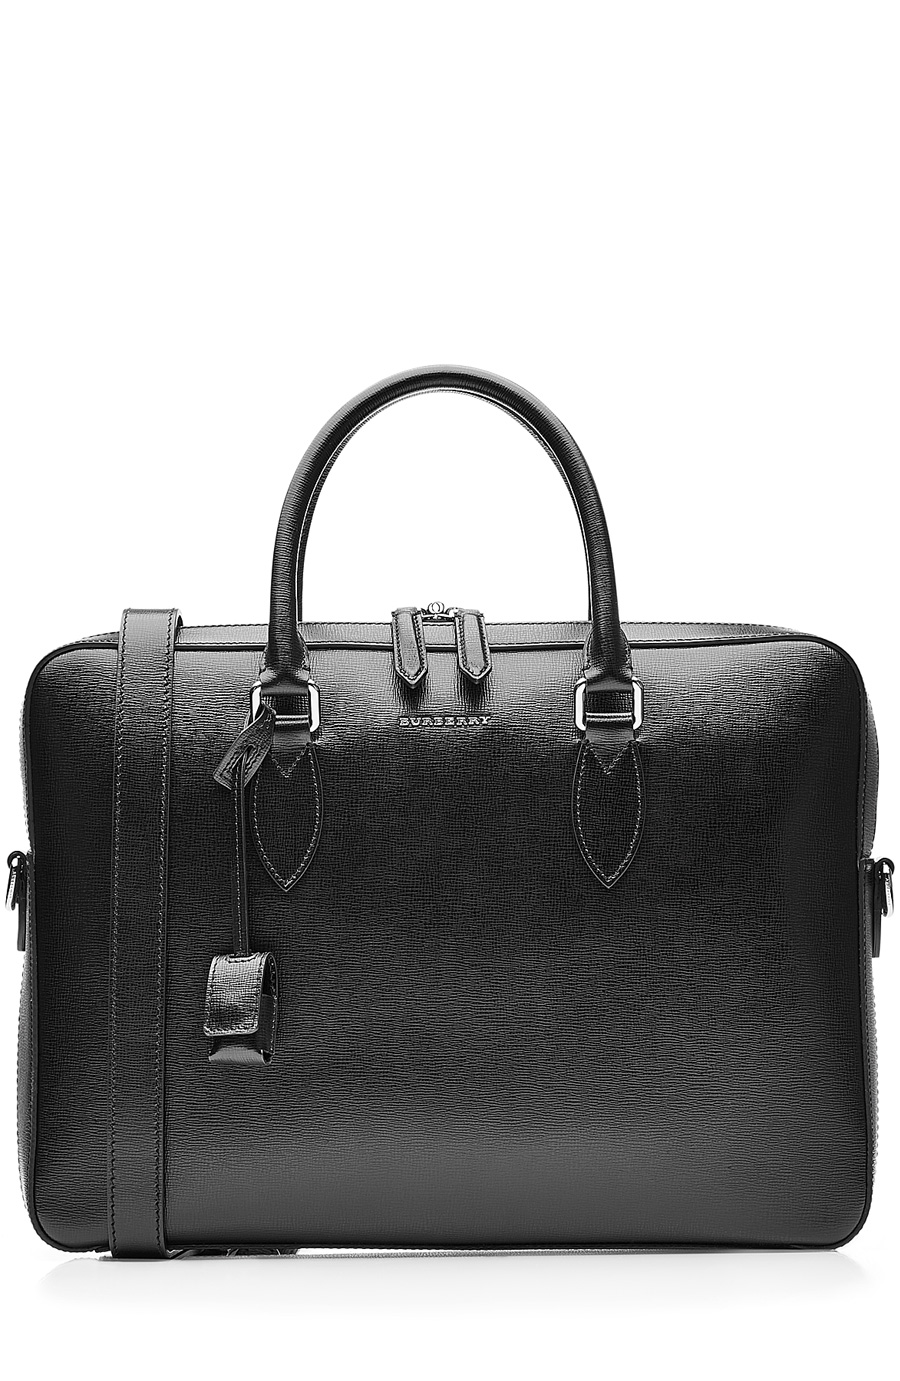 'New London' Calfskin Leather Briefcase - Black